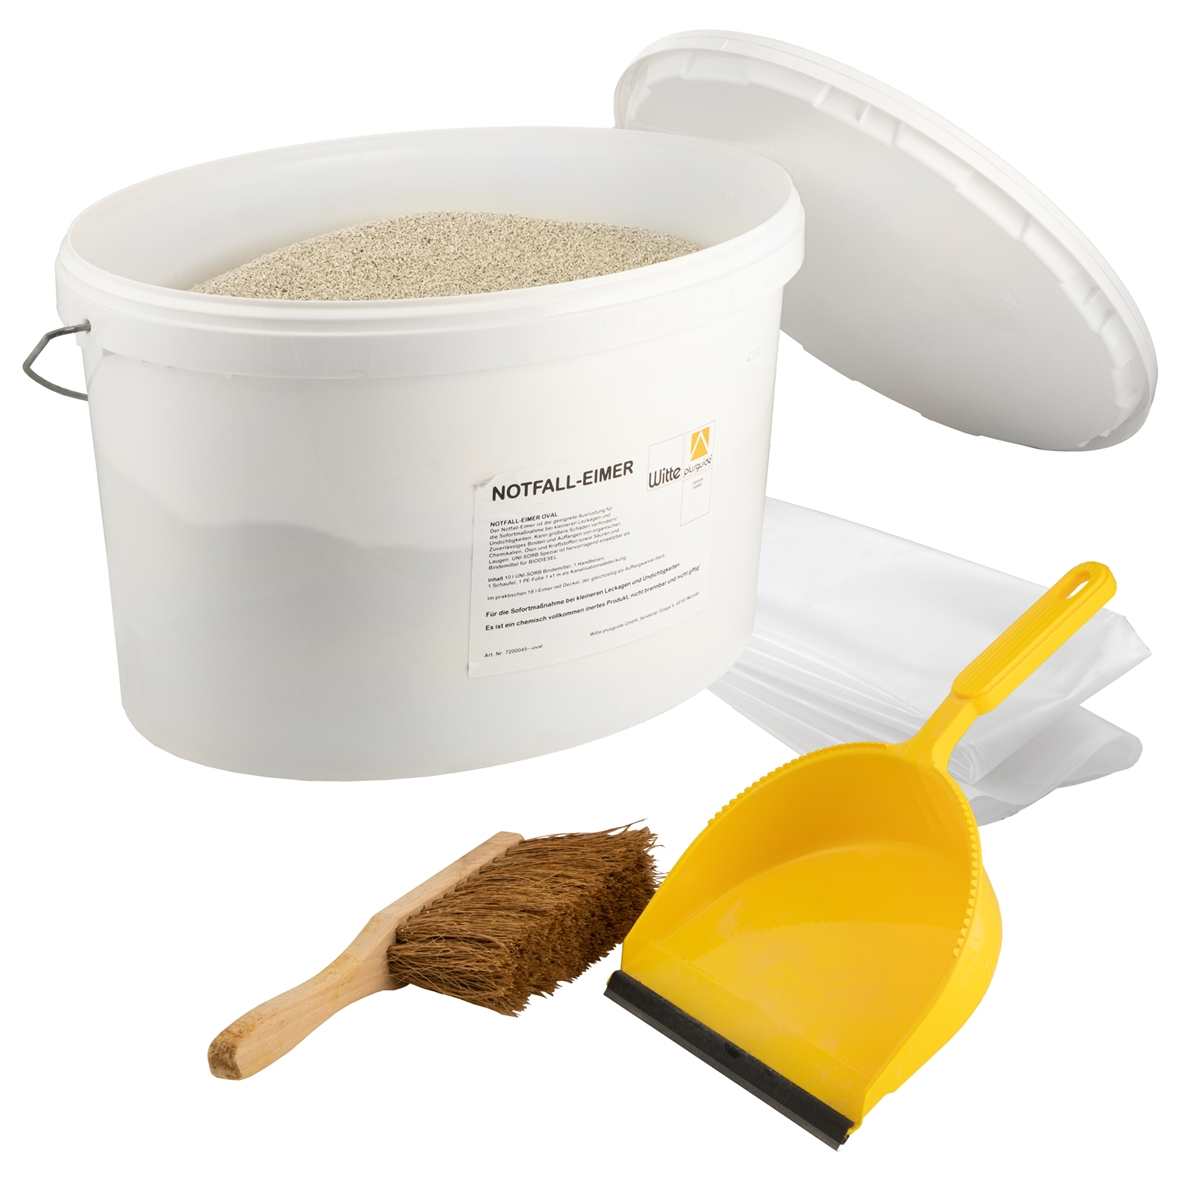 Product Image for 'Oil Absorbent Emergency BucketTitle'